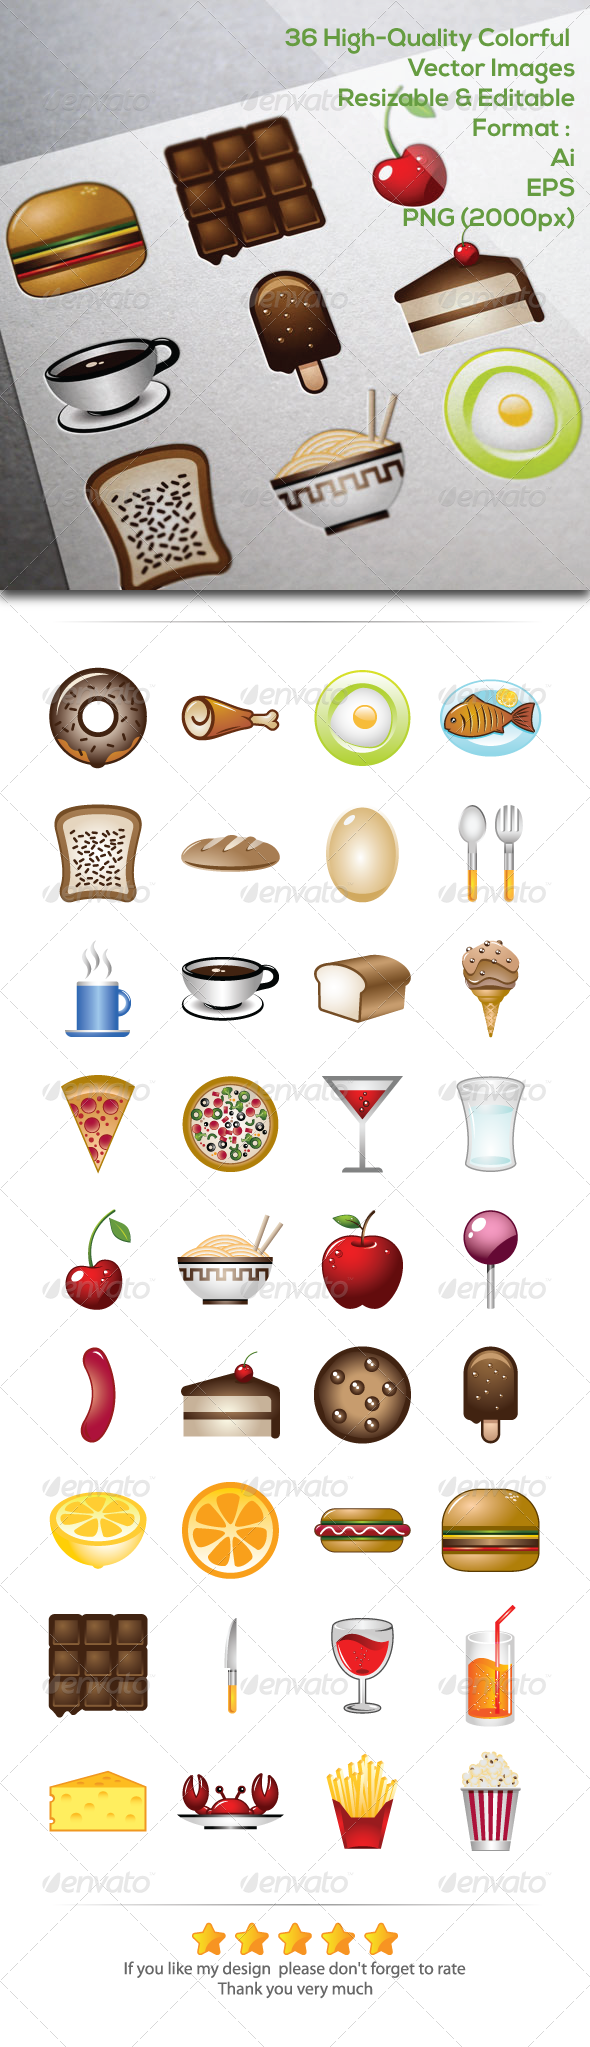 GraphicRiver 36 Food & Beverage Vector Images 5699291